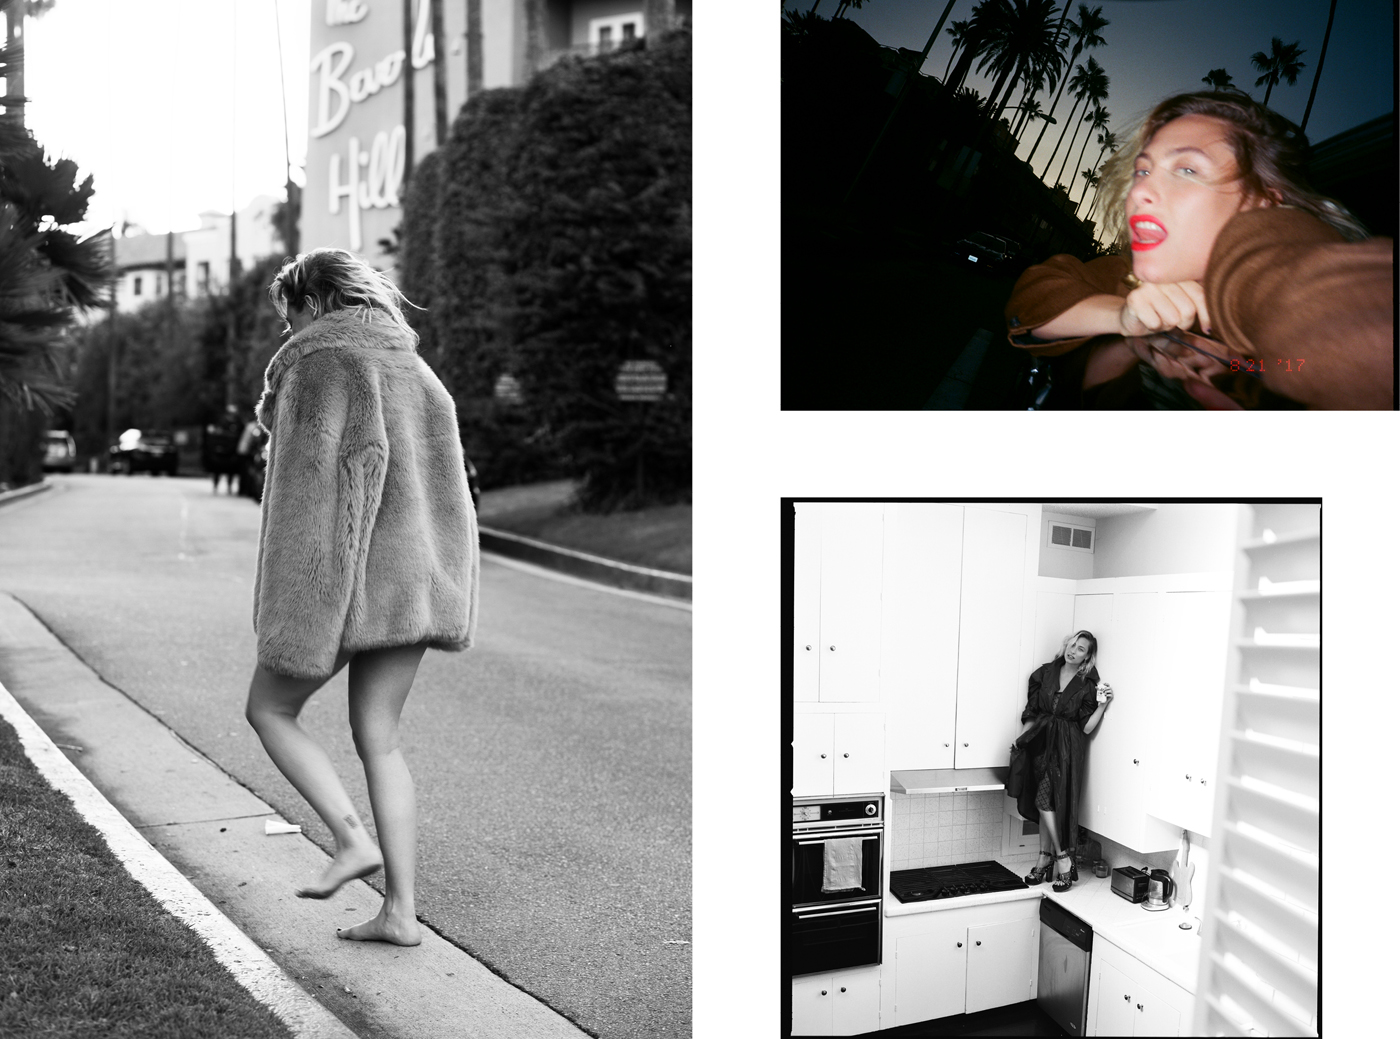 Clockwise from left: Coat by Diane von Furstenberg.Jacket by Jil Sander.All clothing by Joseph. Shoes by Adam Selman.